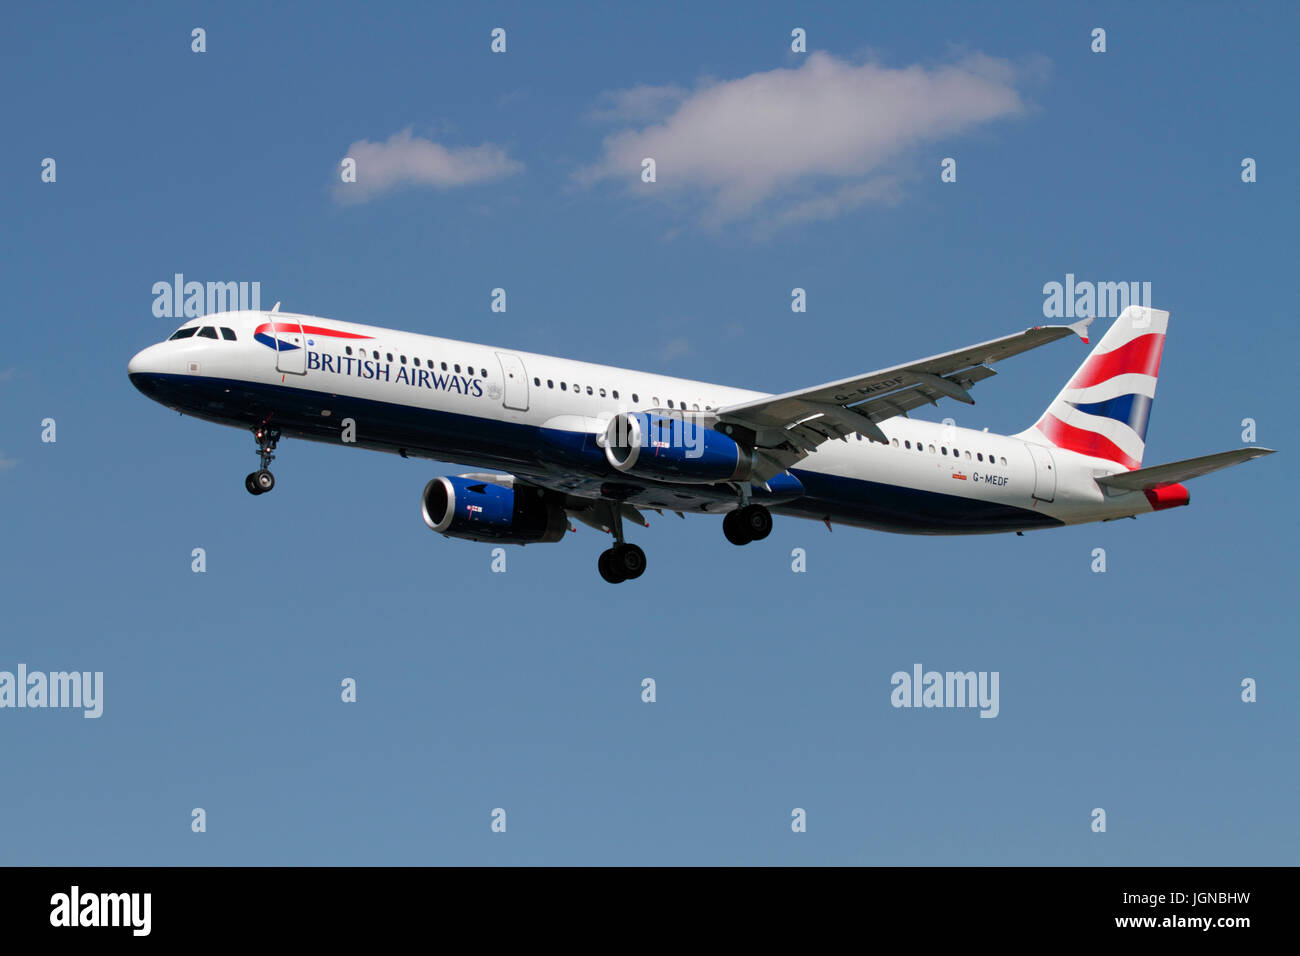 Civil aviation. British Airways Airbus A321-200 passenger aeroplane on approach against a blue sky - Stock Image